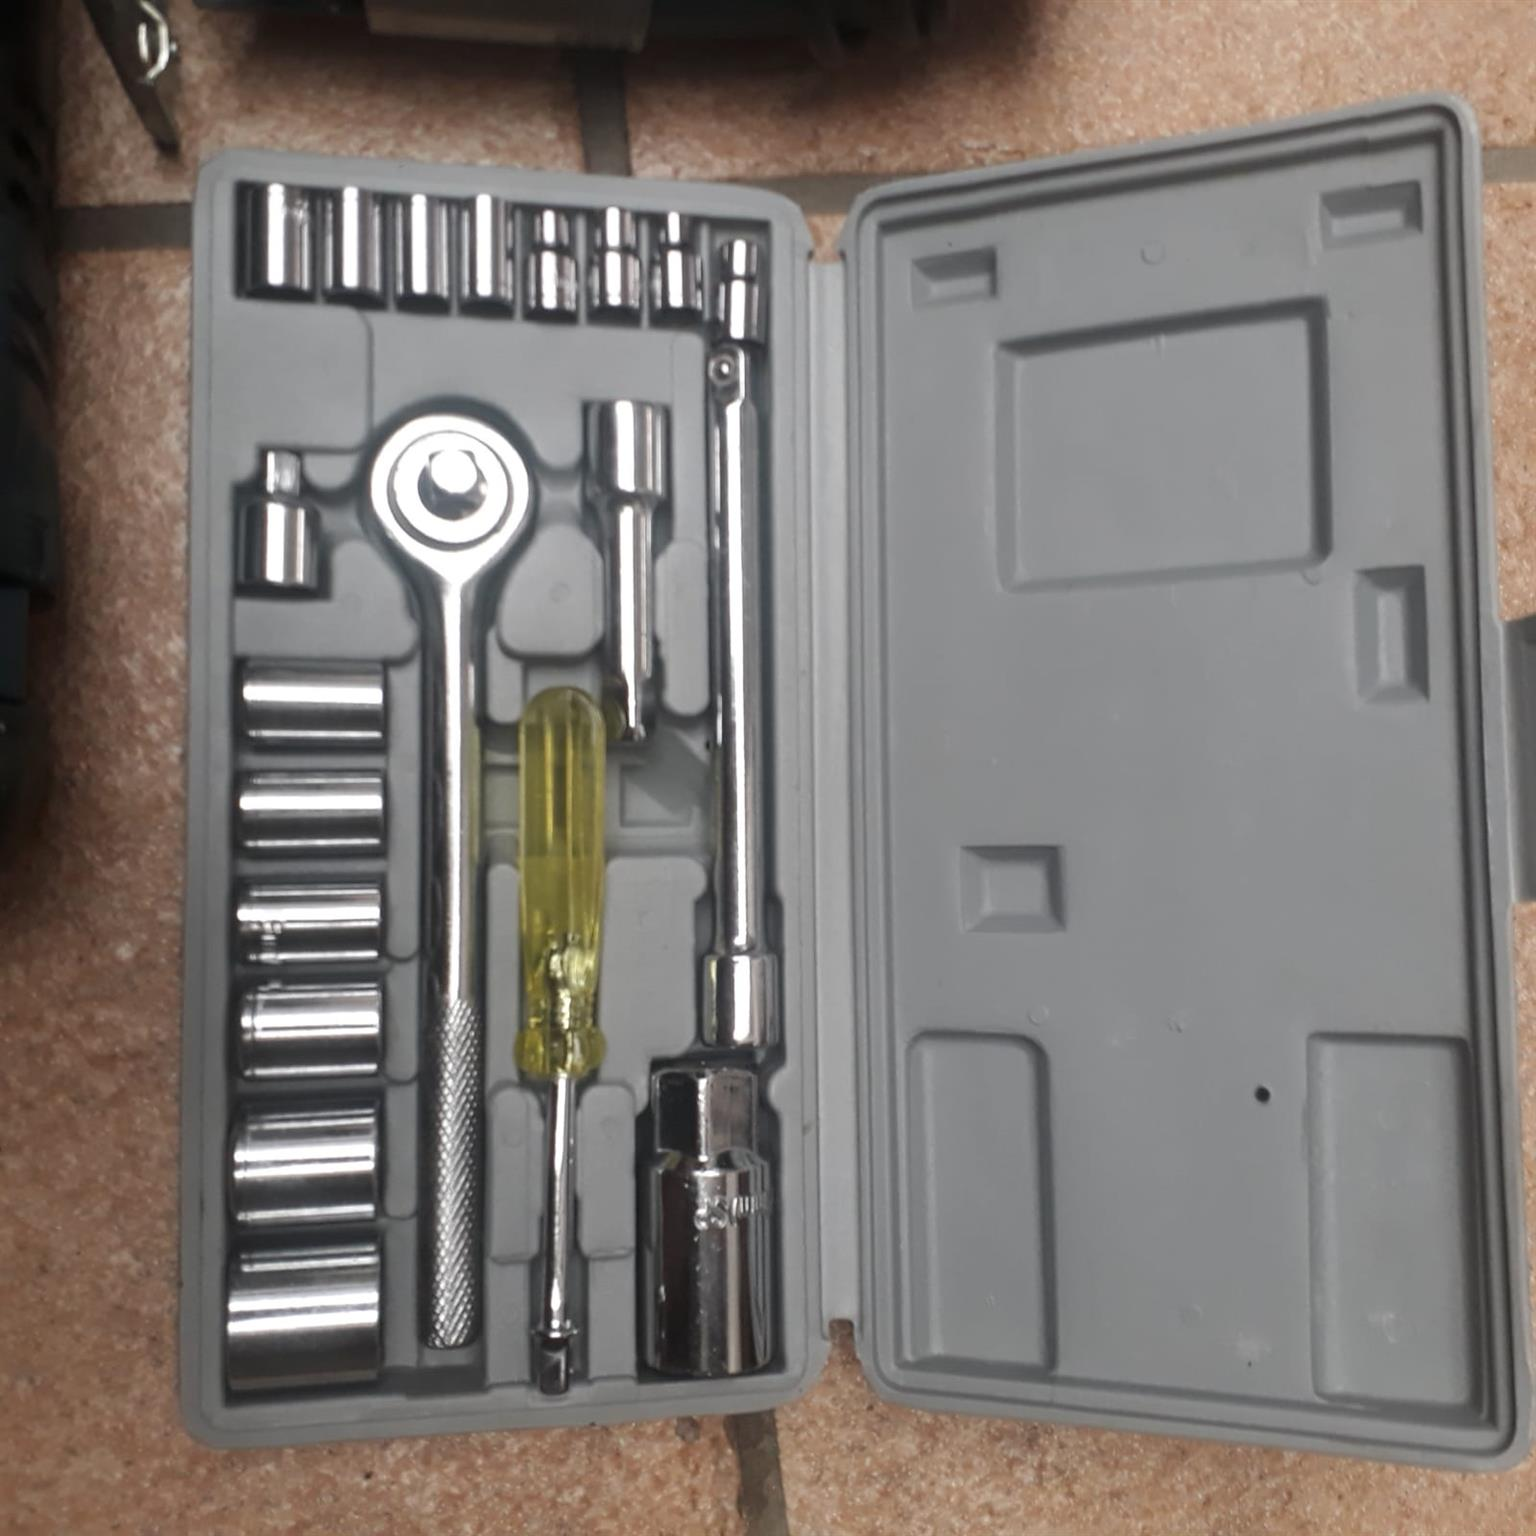 RYOBI jigsaw, AEG impact drill and socket set.  All good working order.  3 items being sold together